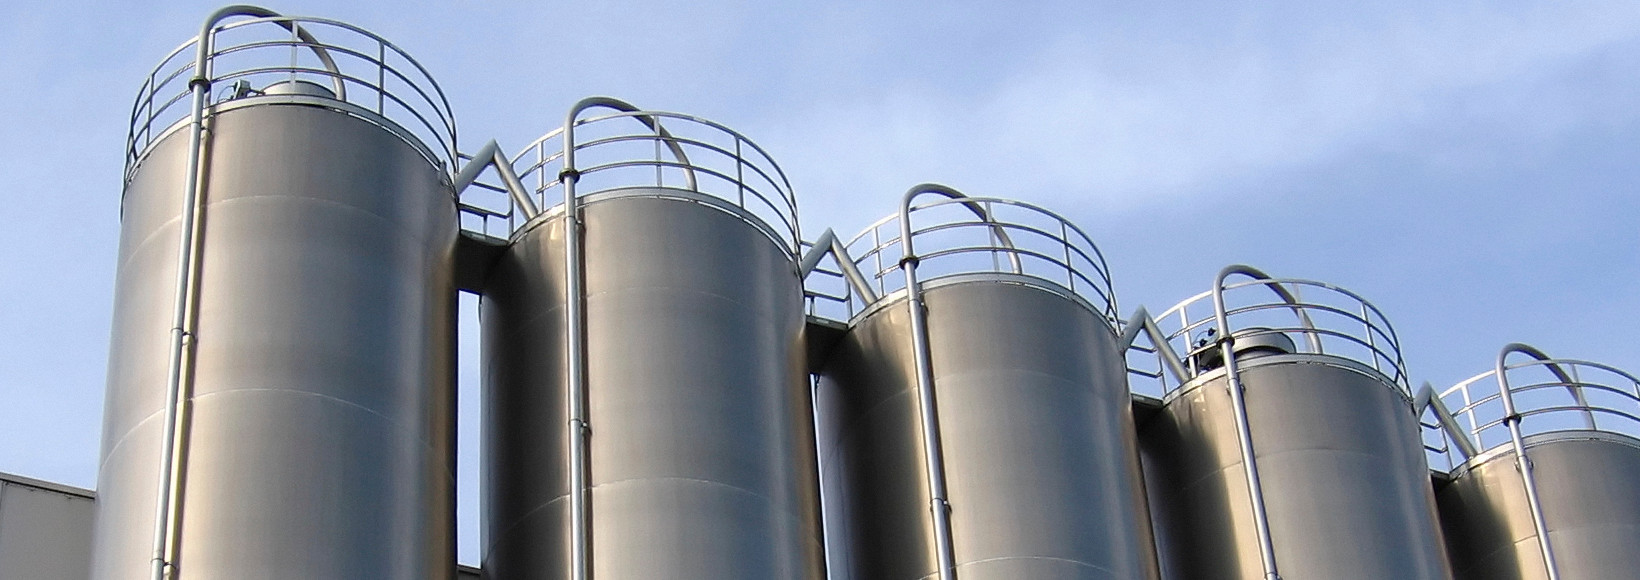 Steel Industrial Silos